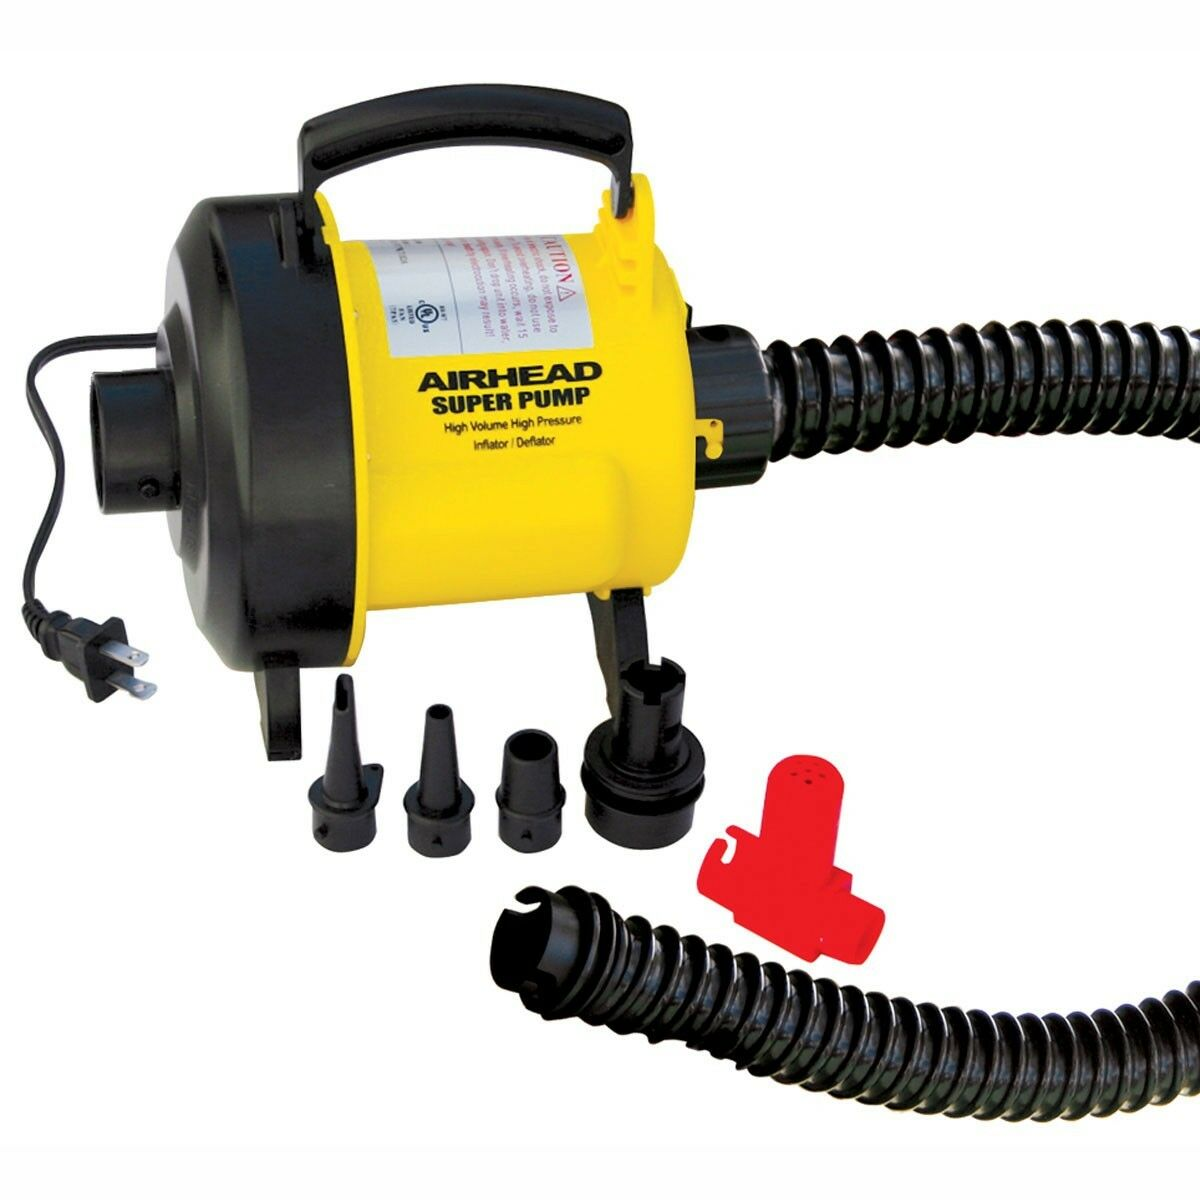 Airhead Air Super Pump 120V, High Volume  High Pressure  ahp-120s